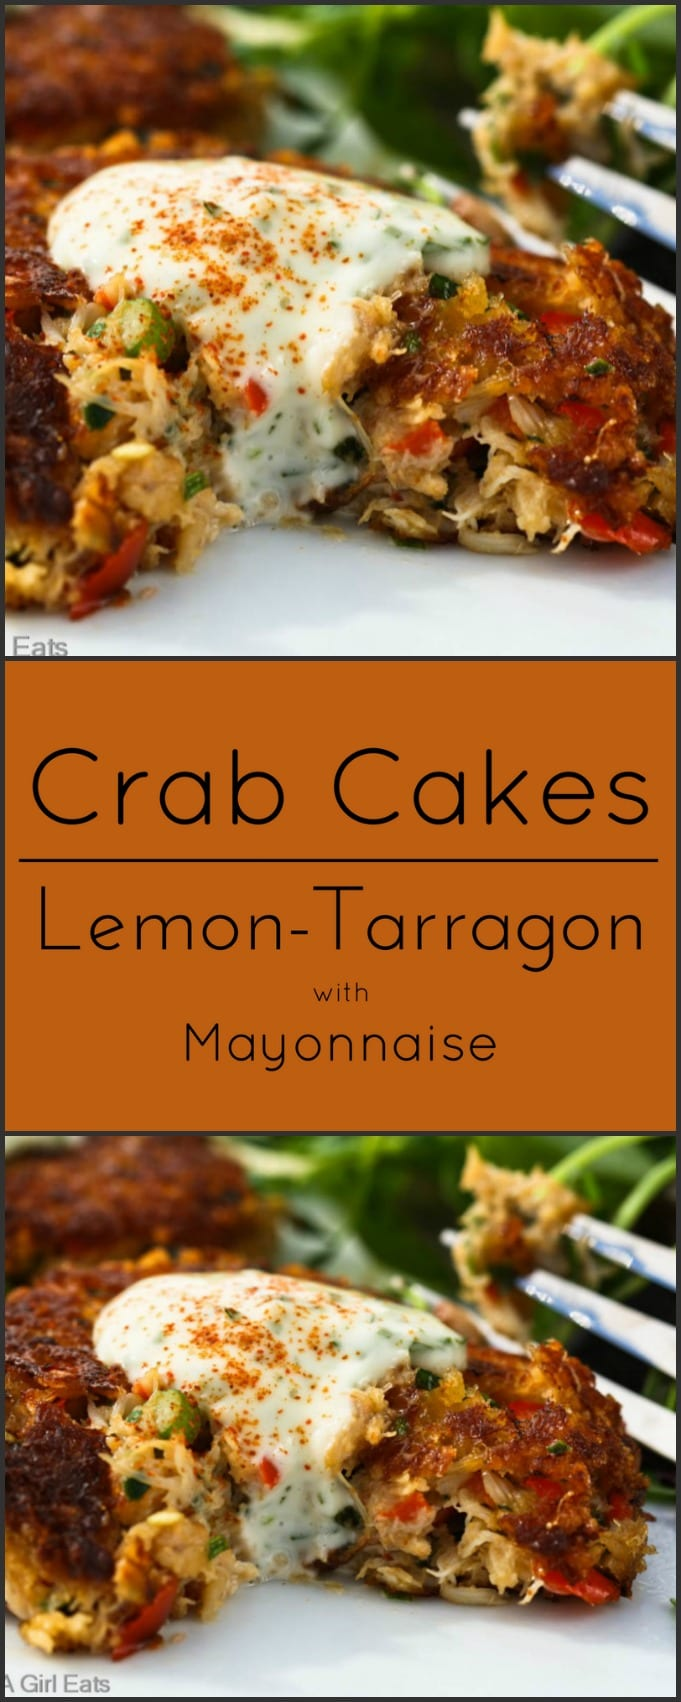 Crab Cakes with Lemon Tarragon Mayonnaise.